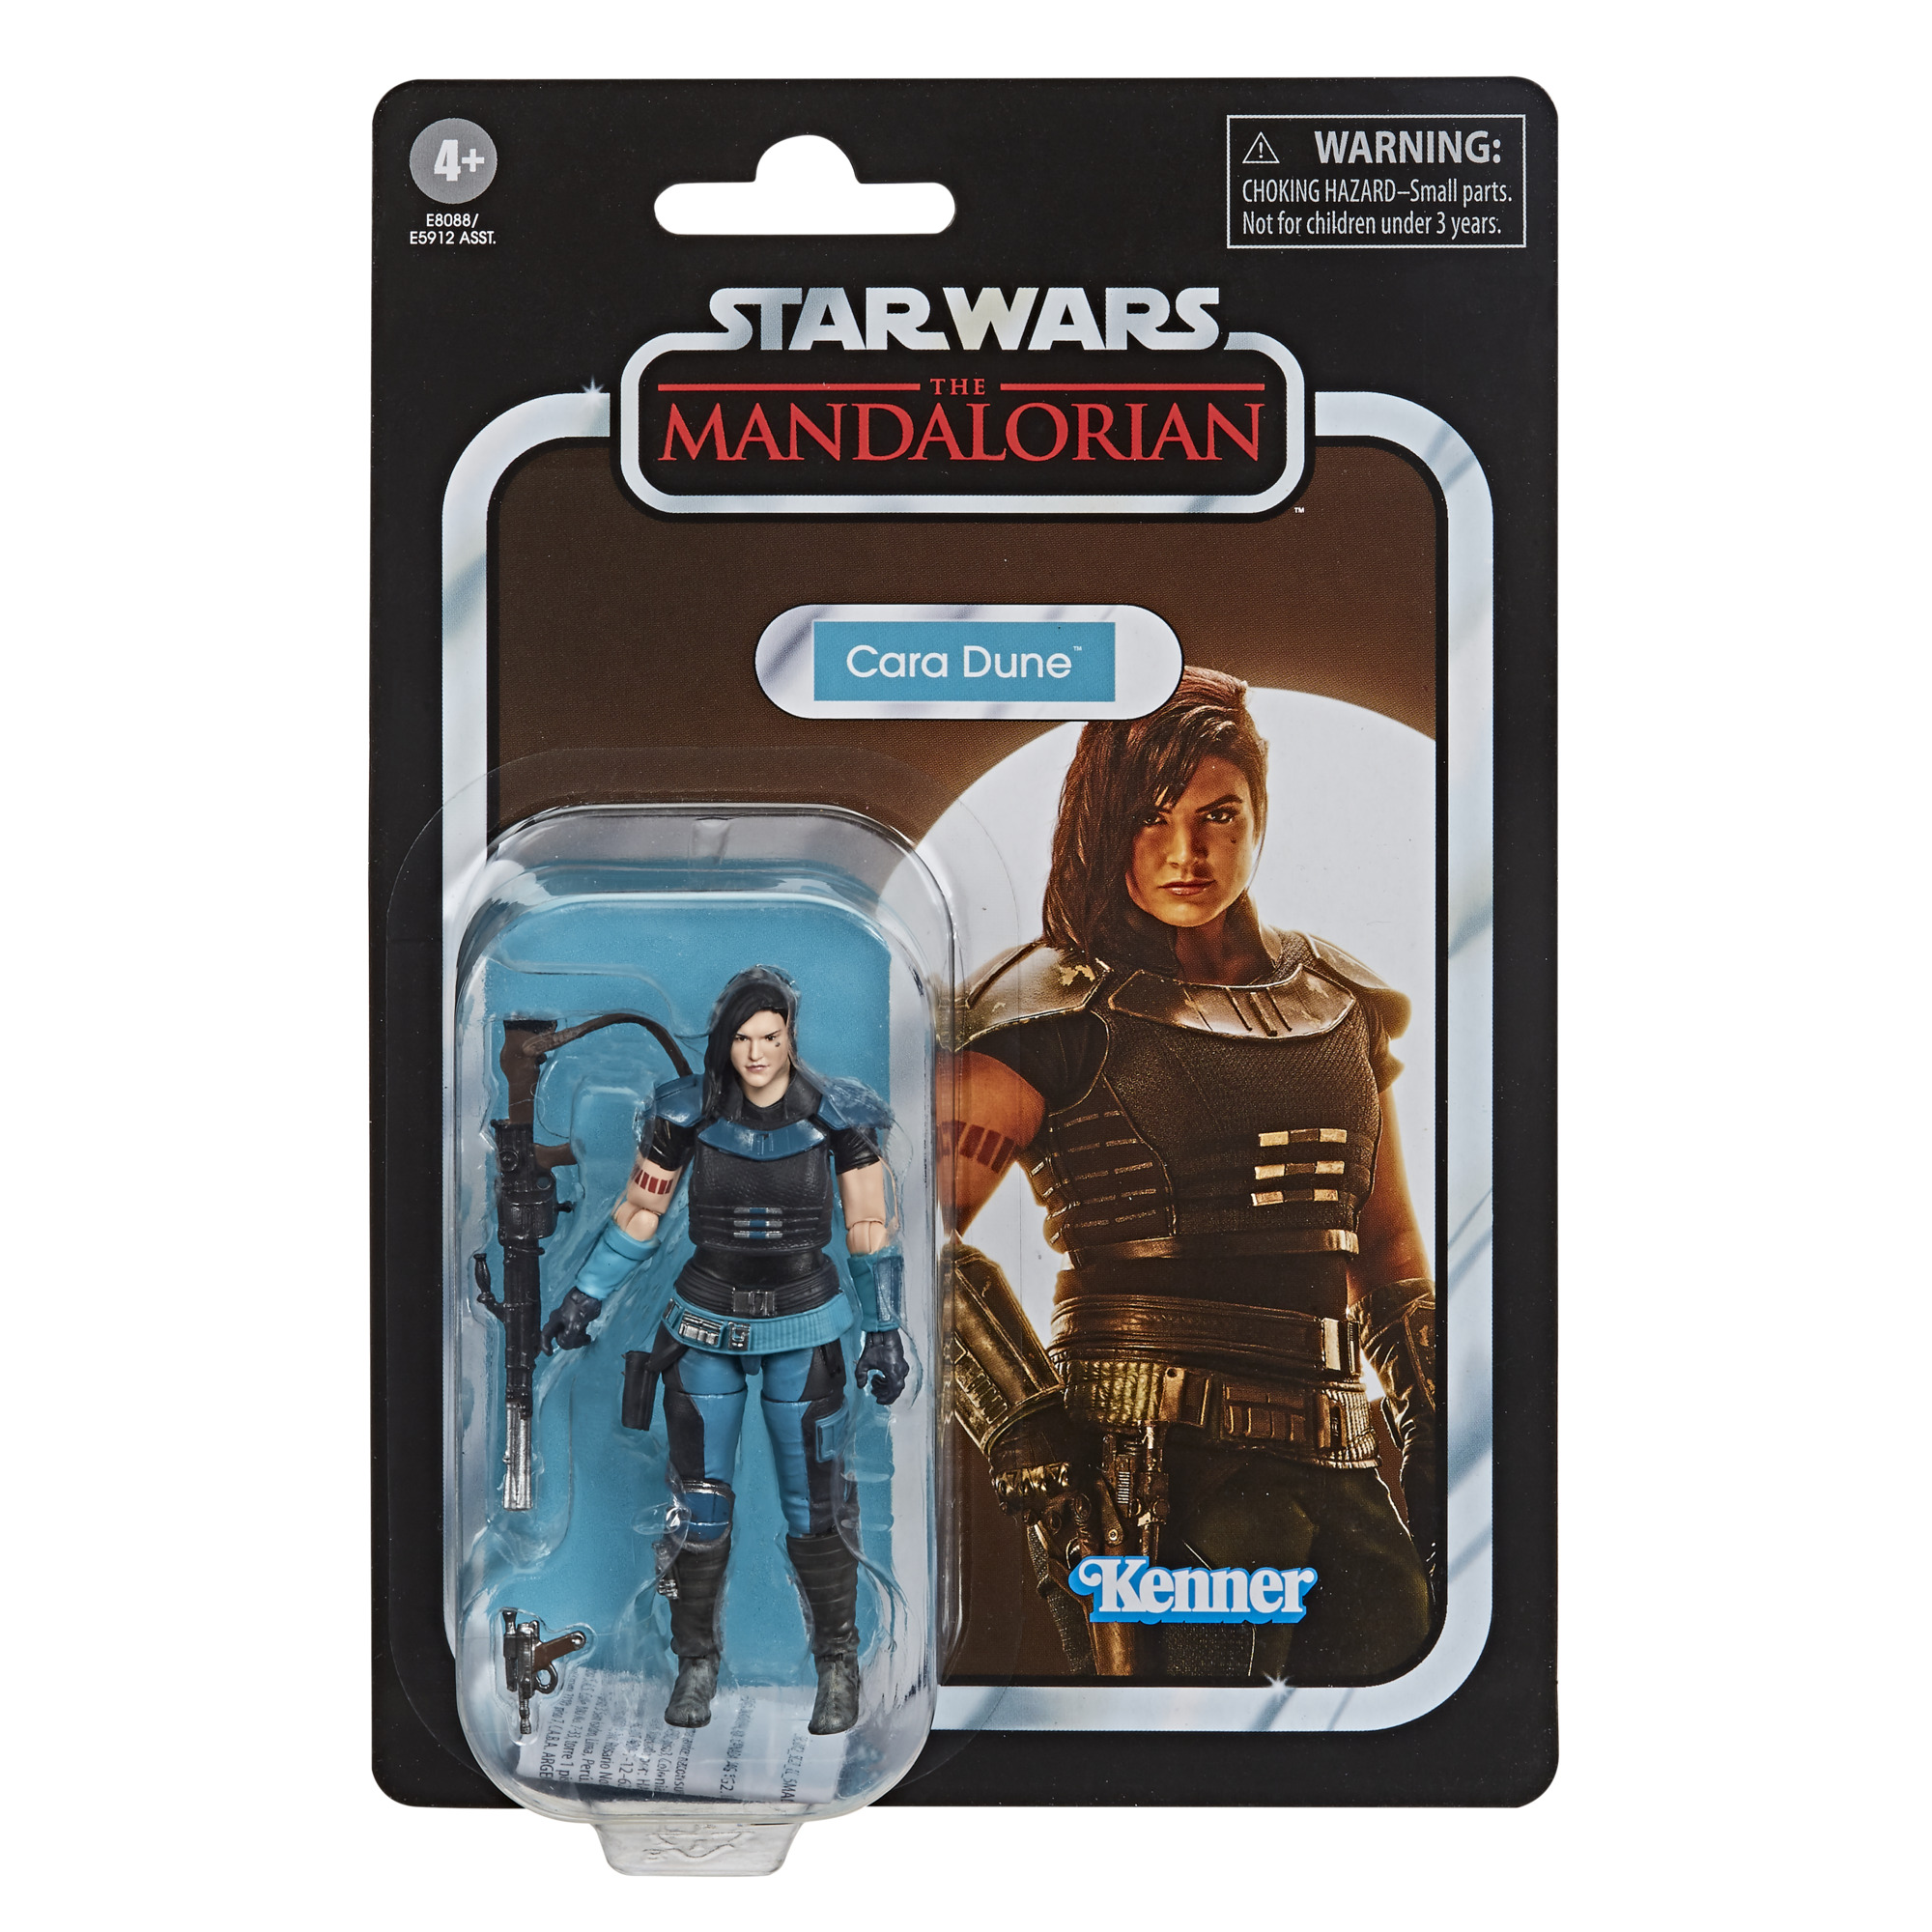 Star Wars The Vintage Collection Cara Dune Toy Action Figure E8088ES0 5010993694389